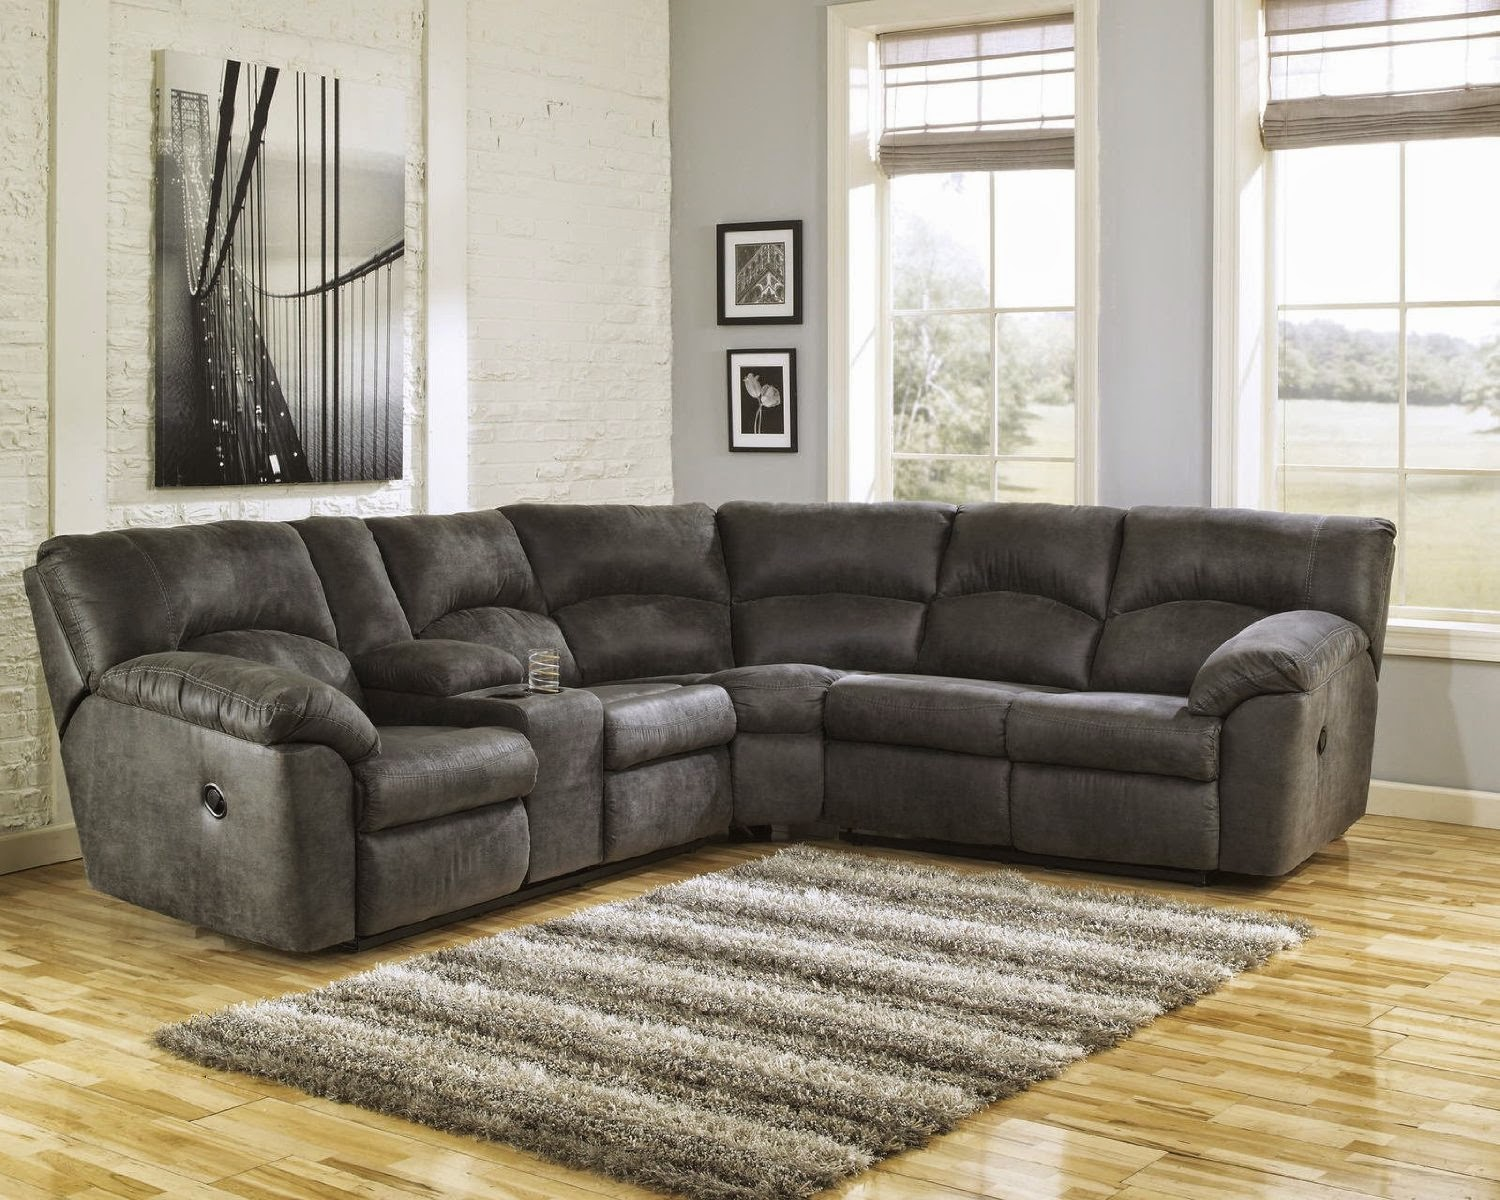 reclinable sectional sofas sofa beds perth the best reclining reviews